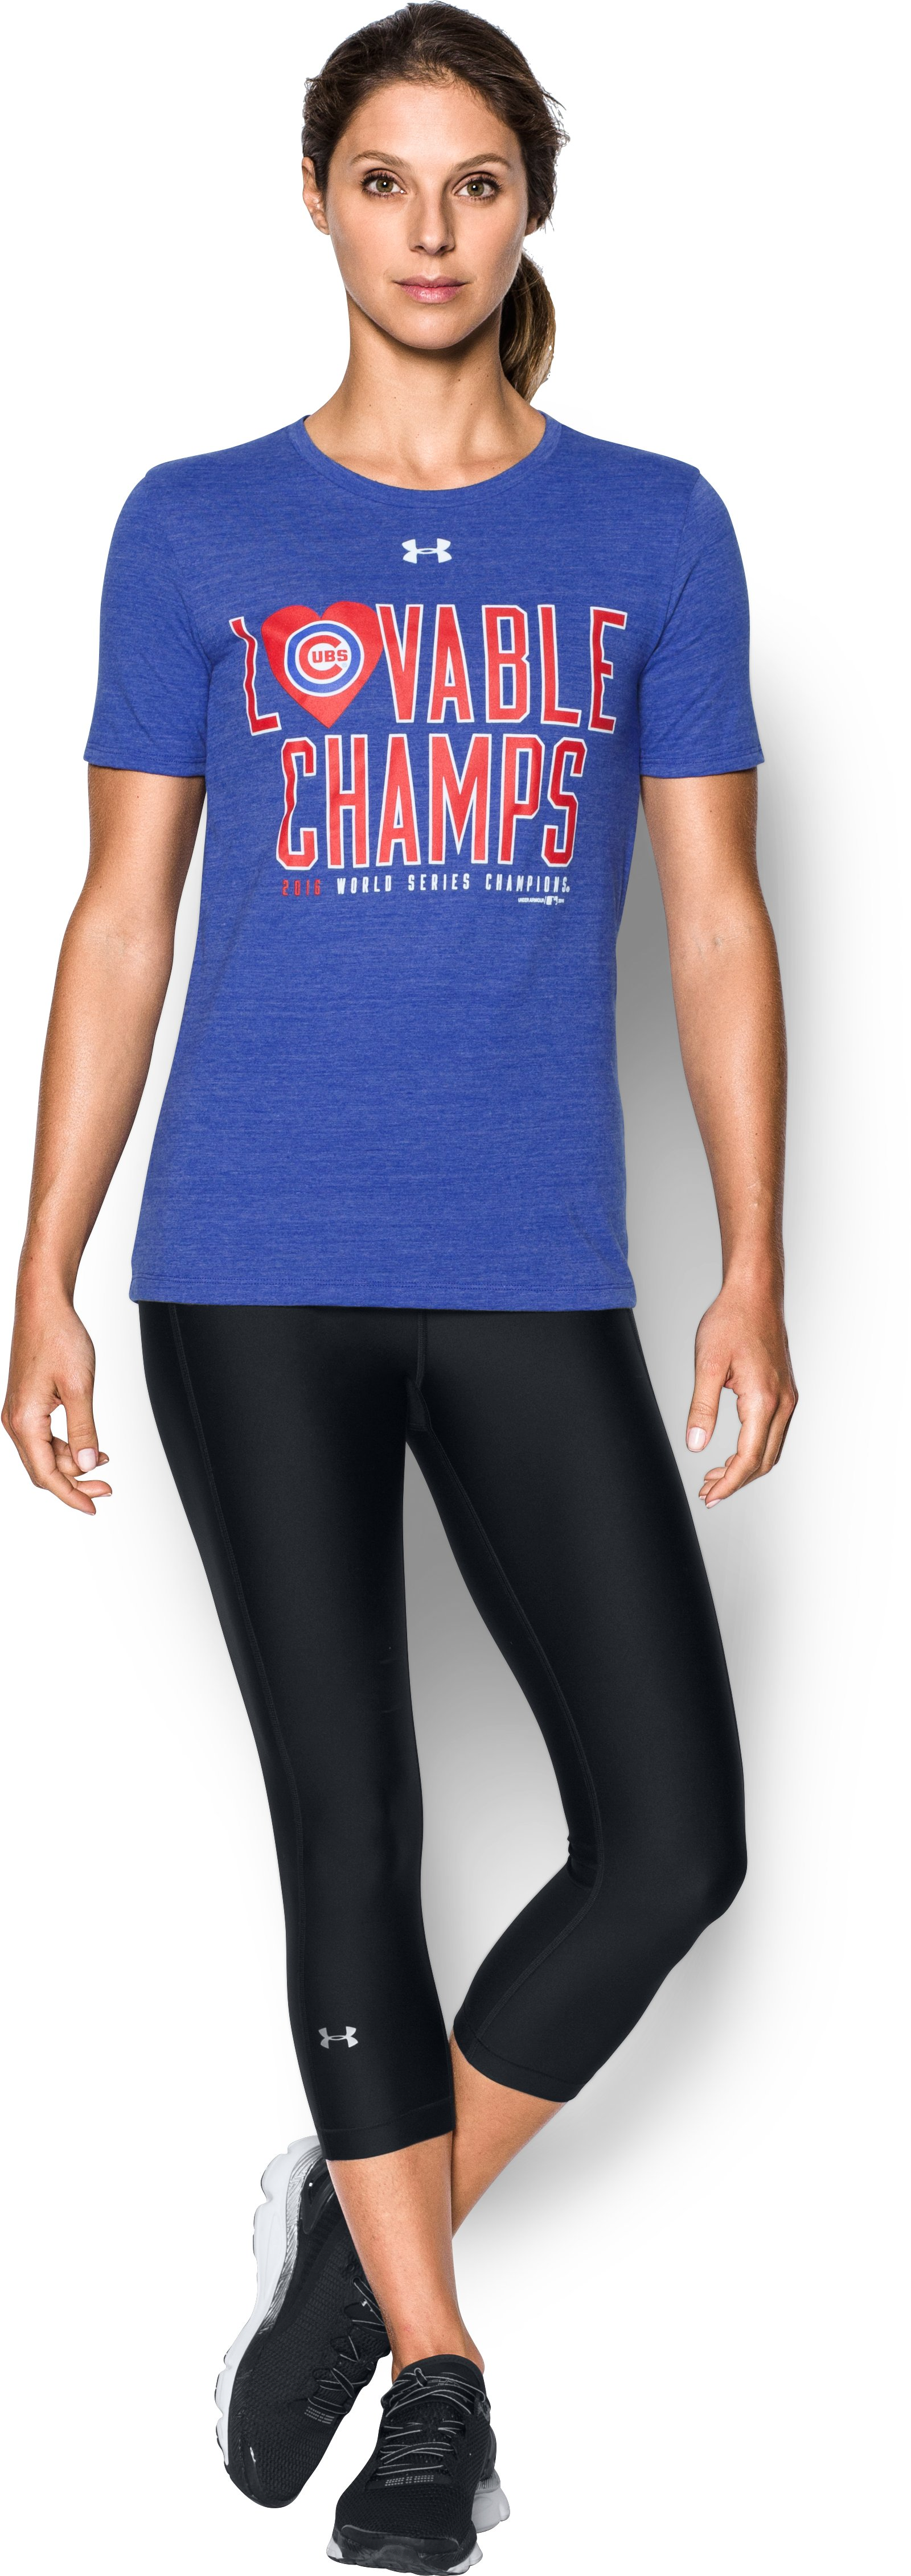 Women's Chicago Cubs Lovable Champ T-Shirt, Royal, Front